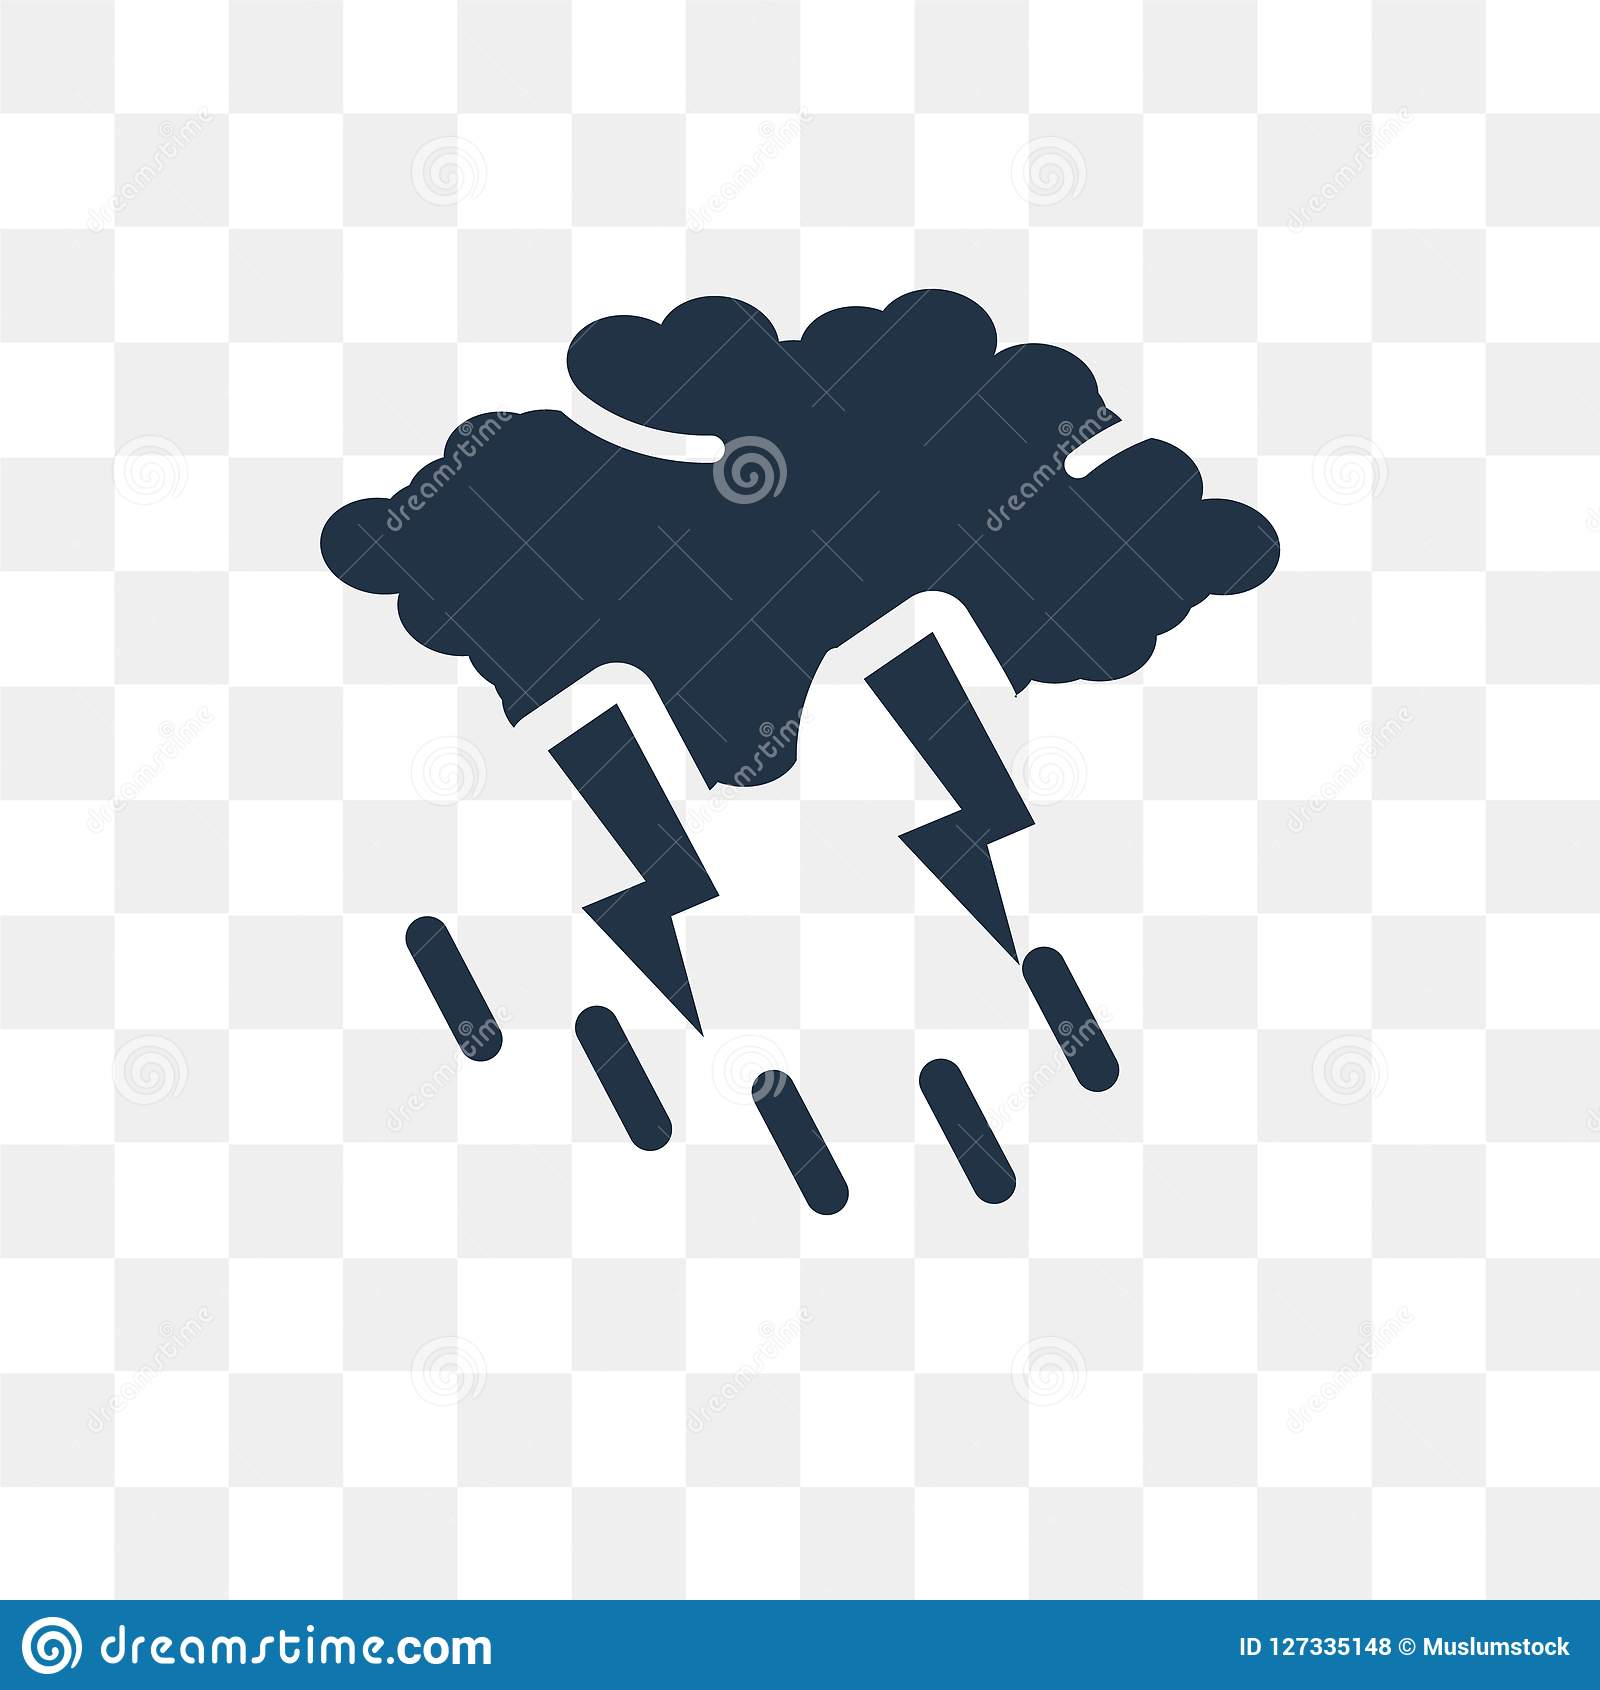 rain and thunder vector icon isolated on transparent background rain and thunder transparency concept can be used web and mobile stock vector illustration of meteorology storm 127335148 dreamstime com